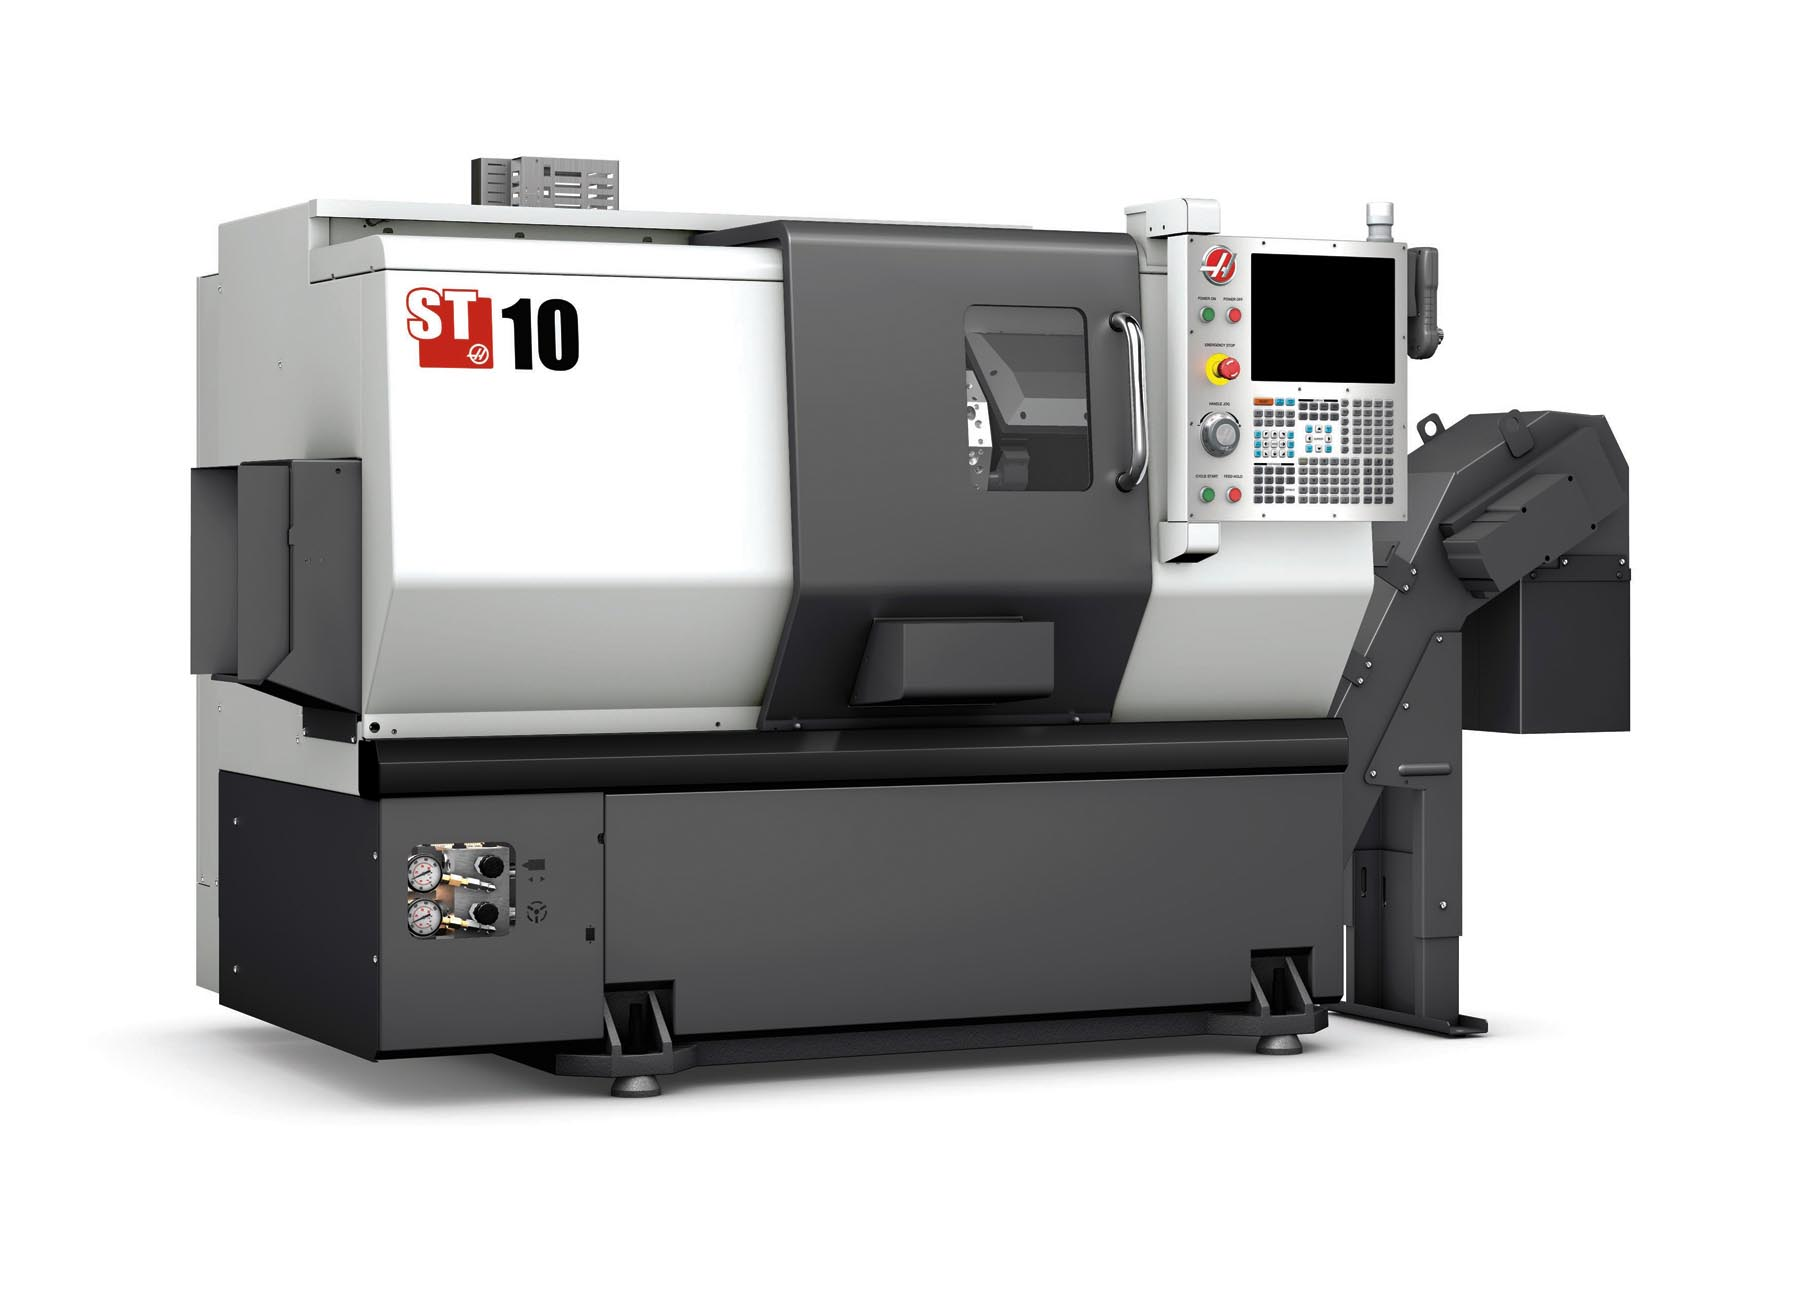 Haas ST-10 CNC Turning Center